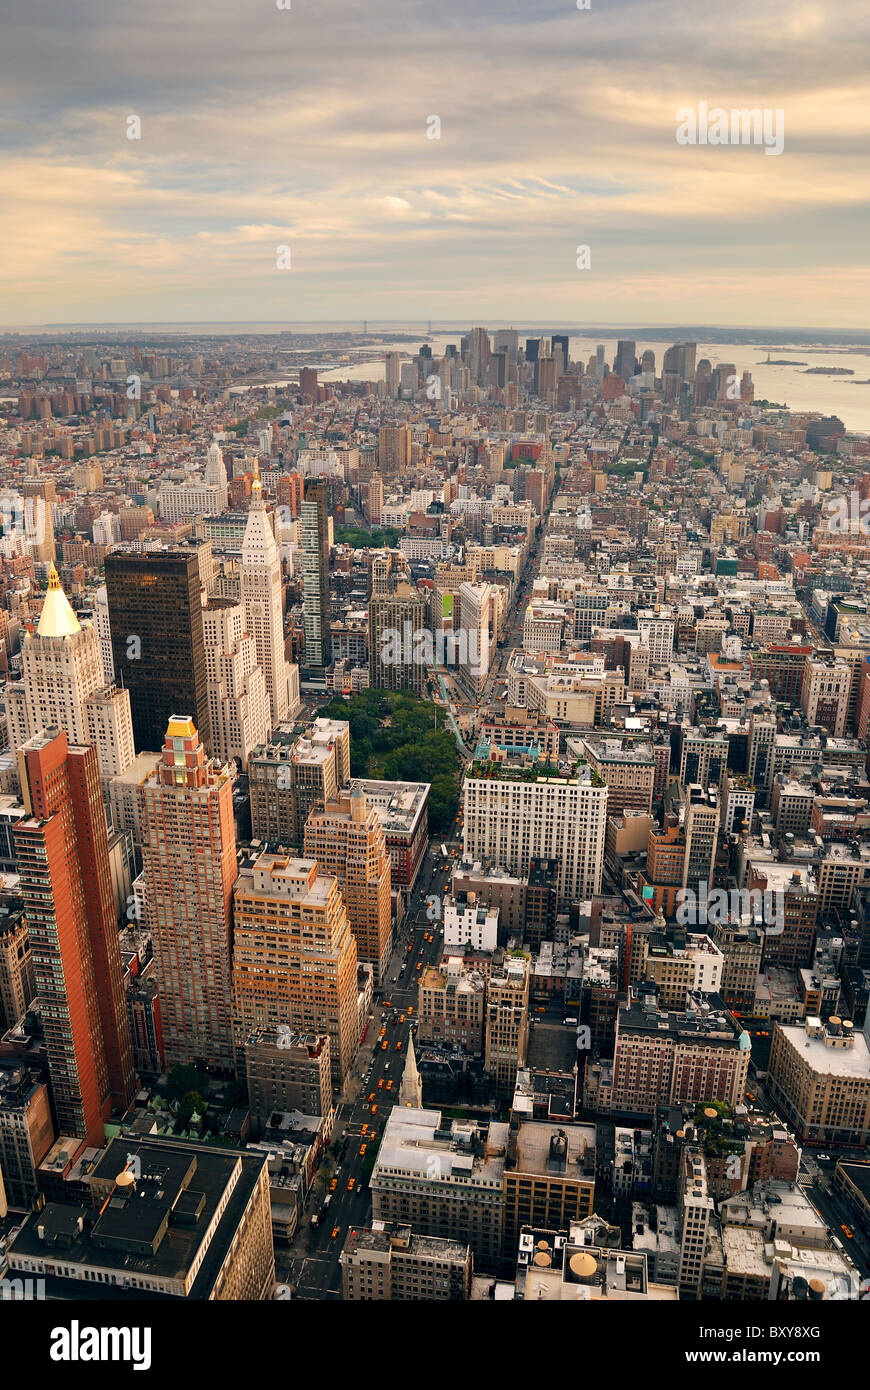 New York City Manhattan sunset skyline aerial view with office building skyscrapers and Hudson River. - Stock Image